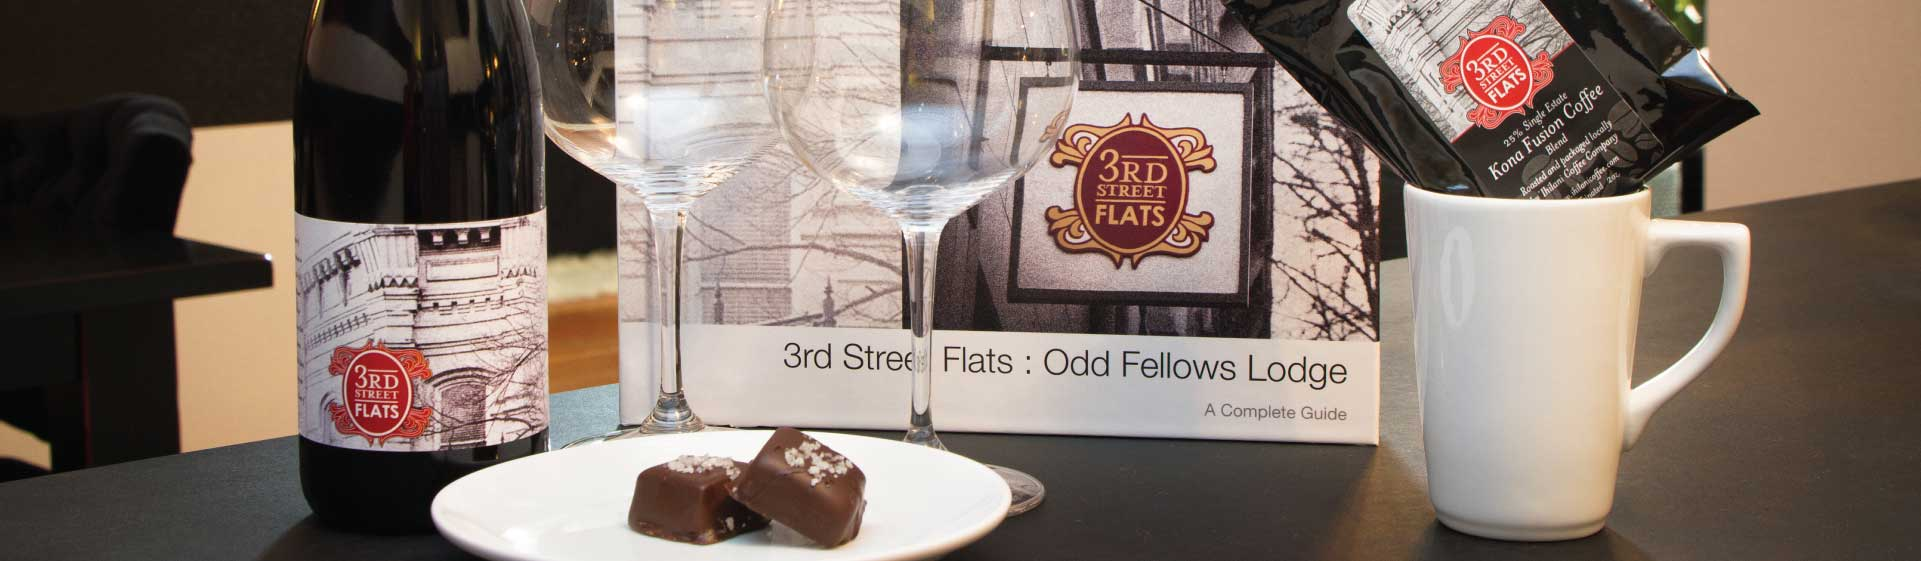 Complimentary wine, chocolates and a little coffee to get you started at 3rd Street Flats in McMinnville, Oregon